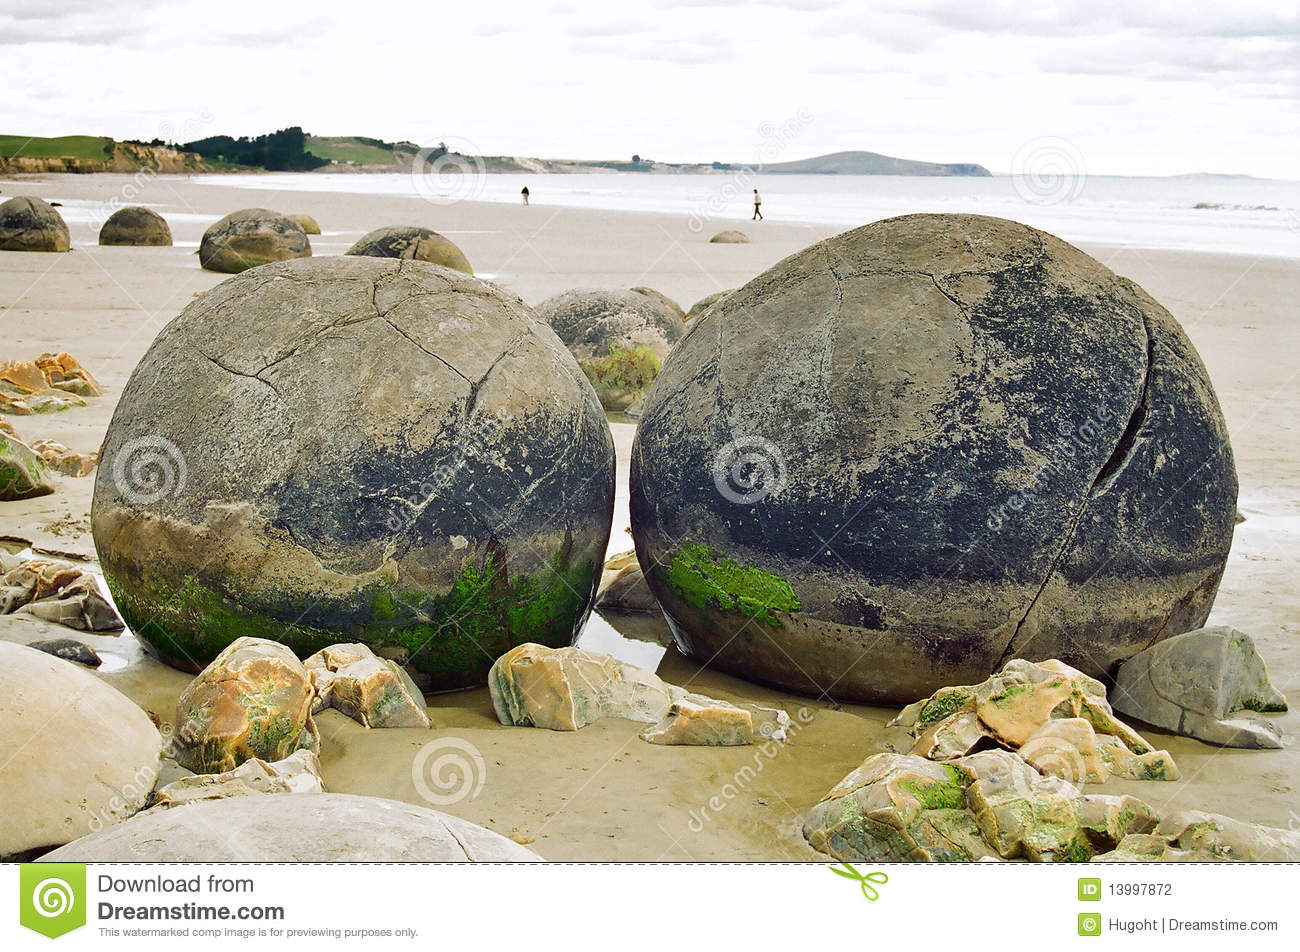 Moeraki Boulders, New Zealand Stock Photography - Image: 13997872